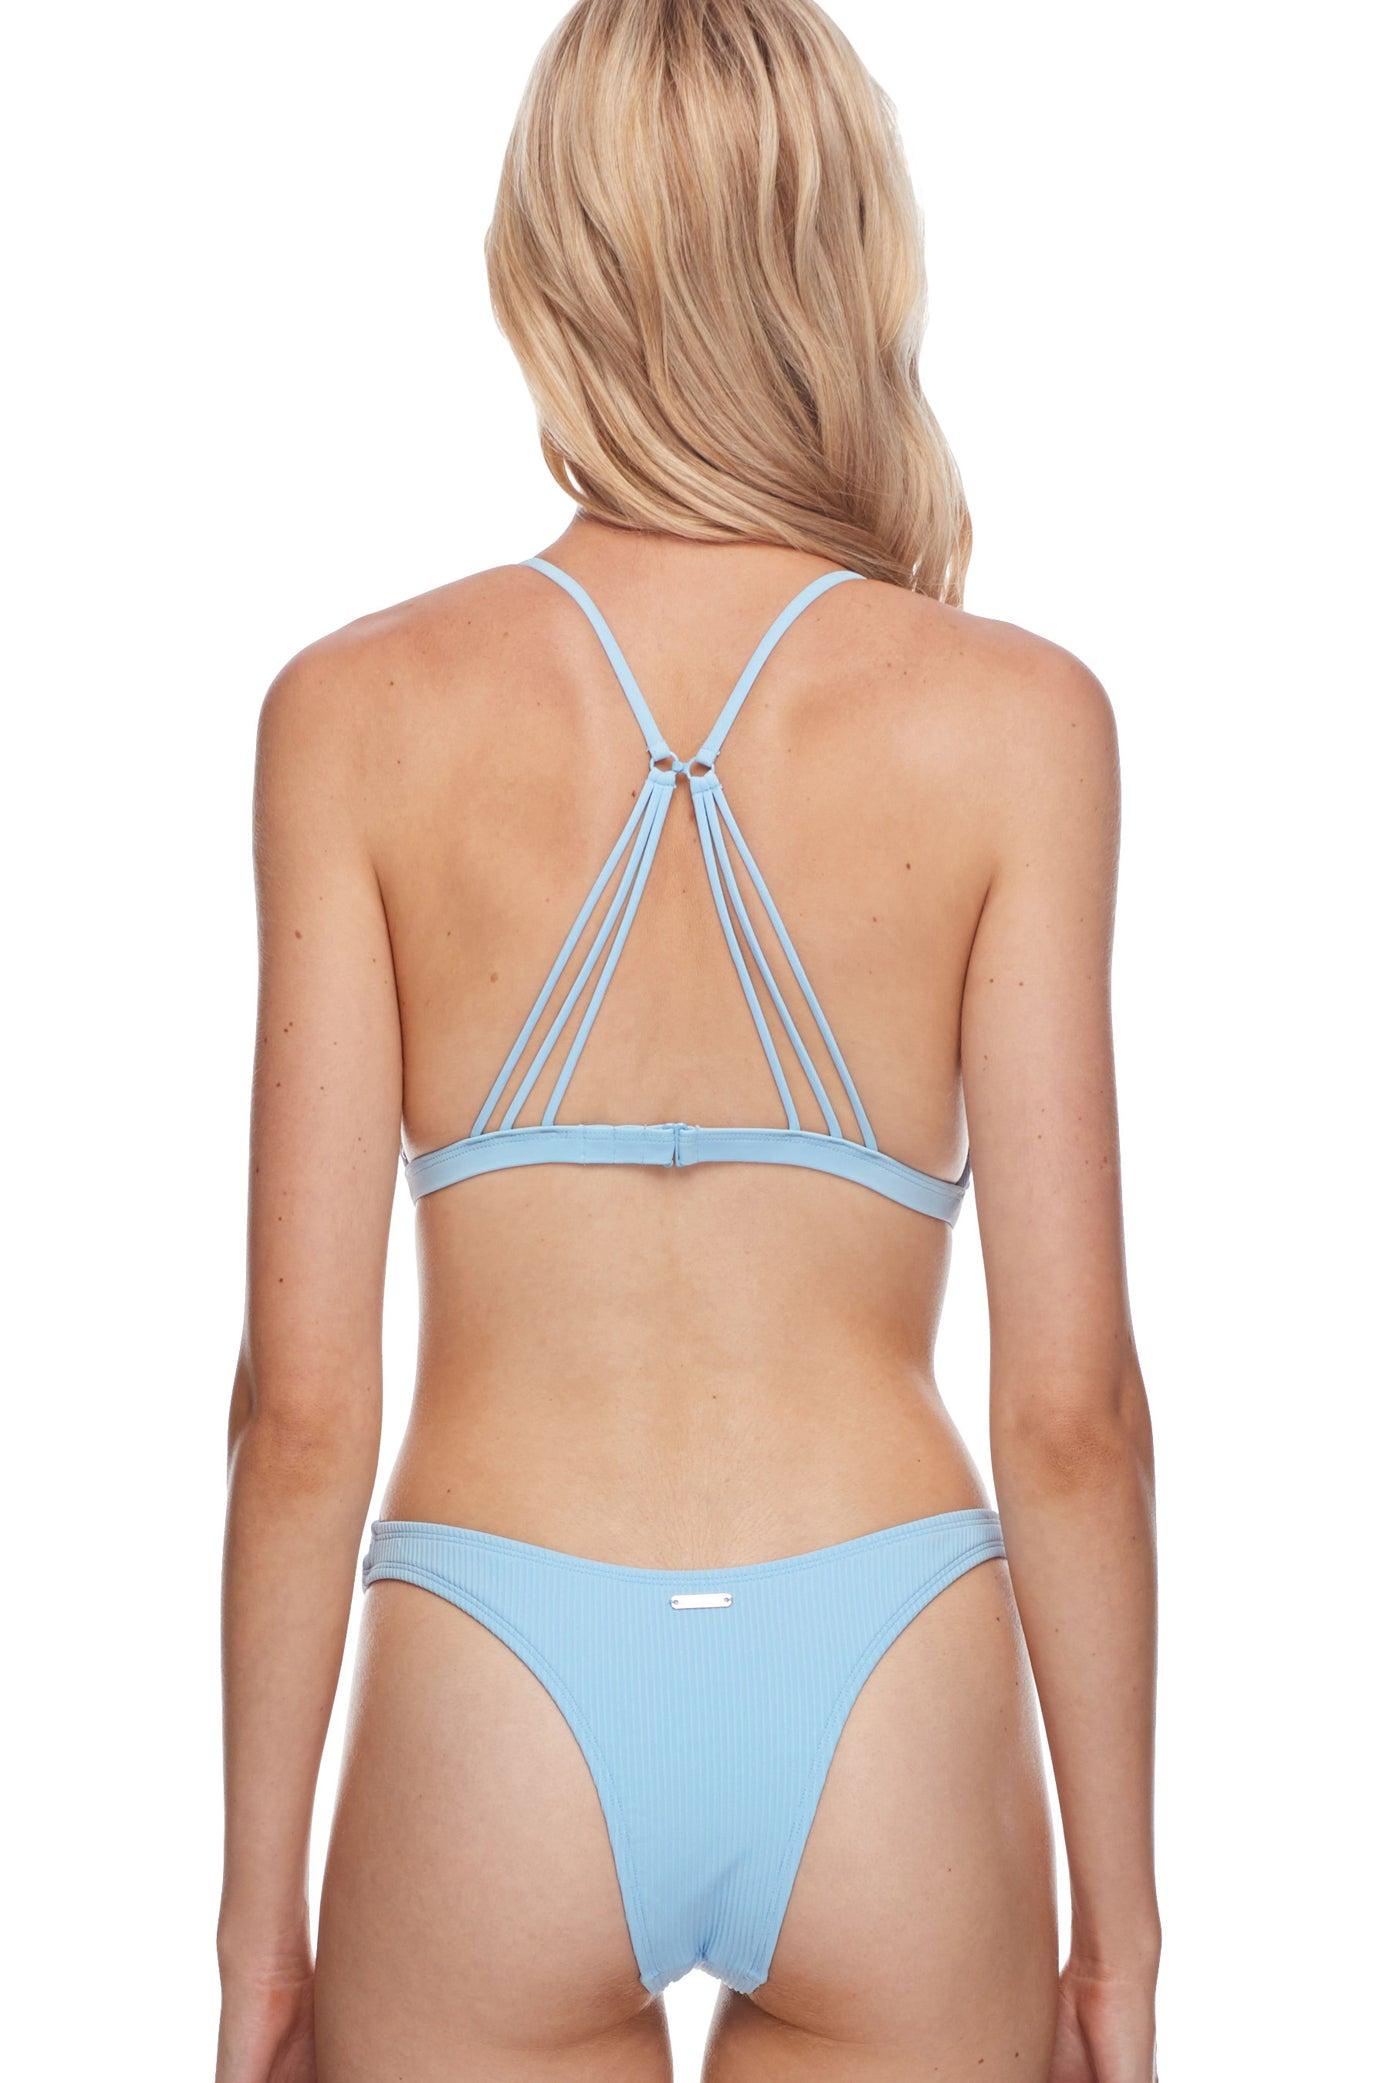 Fixed triangle Removable soft cups Front lace detail Multi-strap back detail Two-way hook back Three-adjustment hook-back Hand Wash Product Number: 39-469102